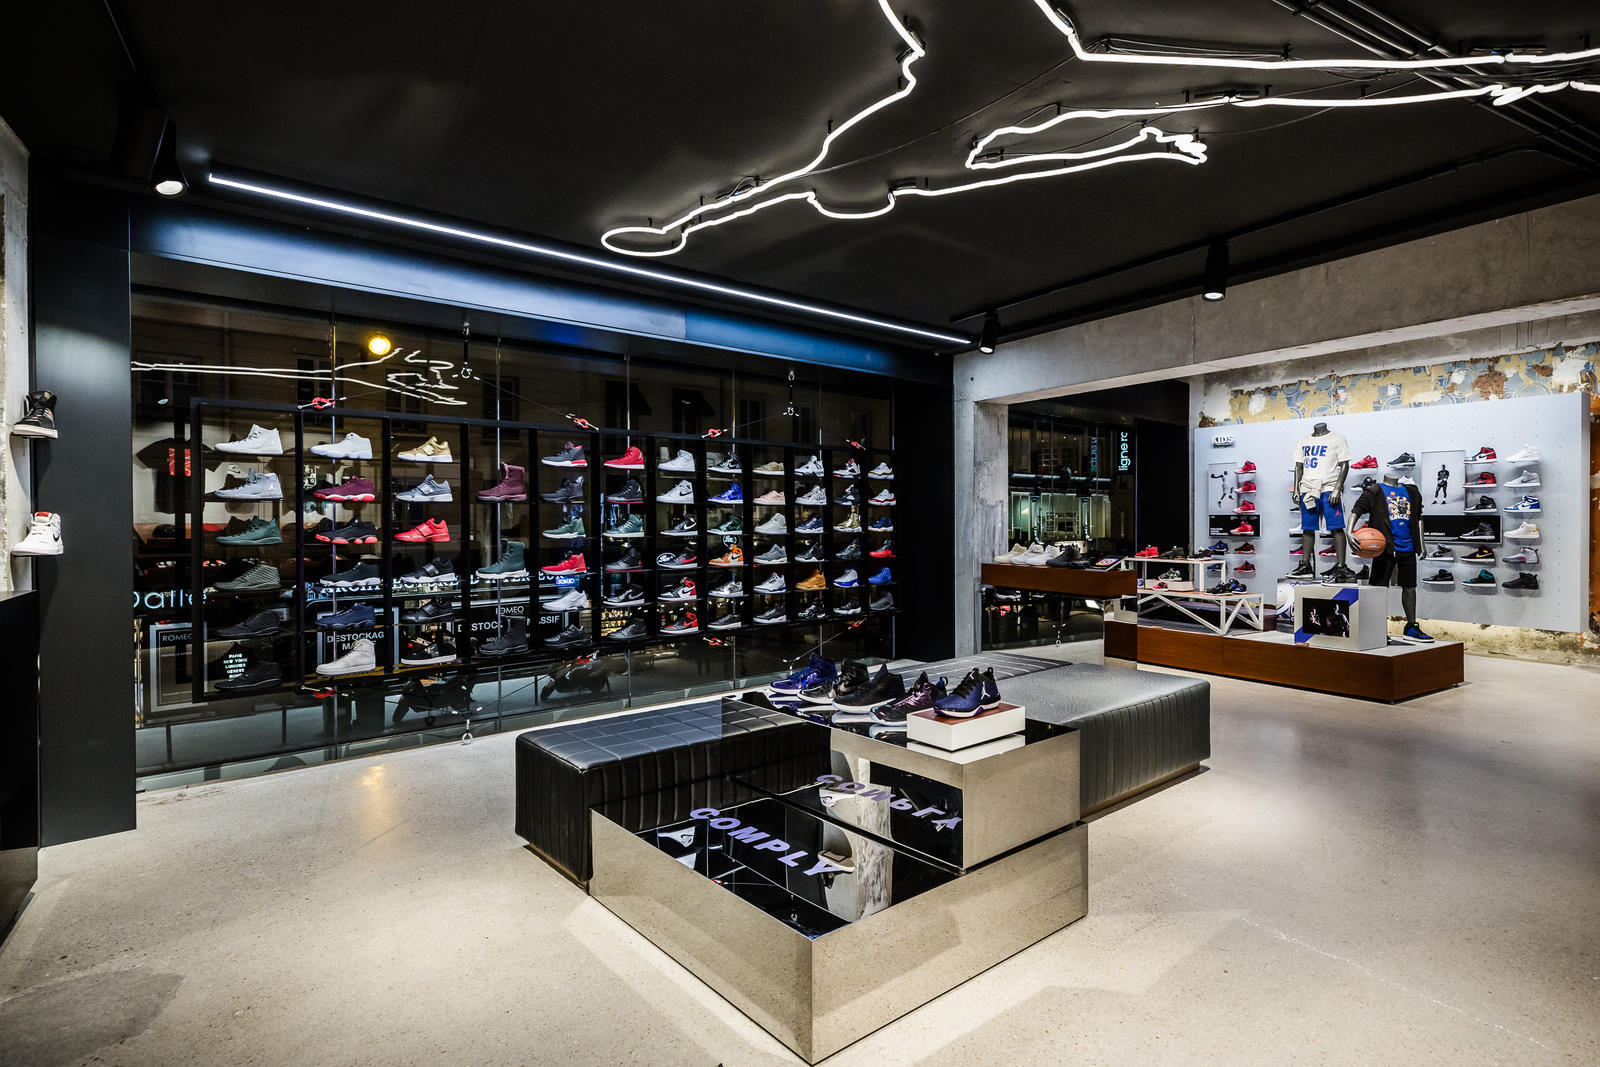 jordan-bastille-boutique-paris-folkr-03